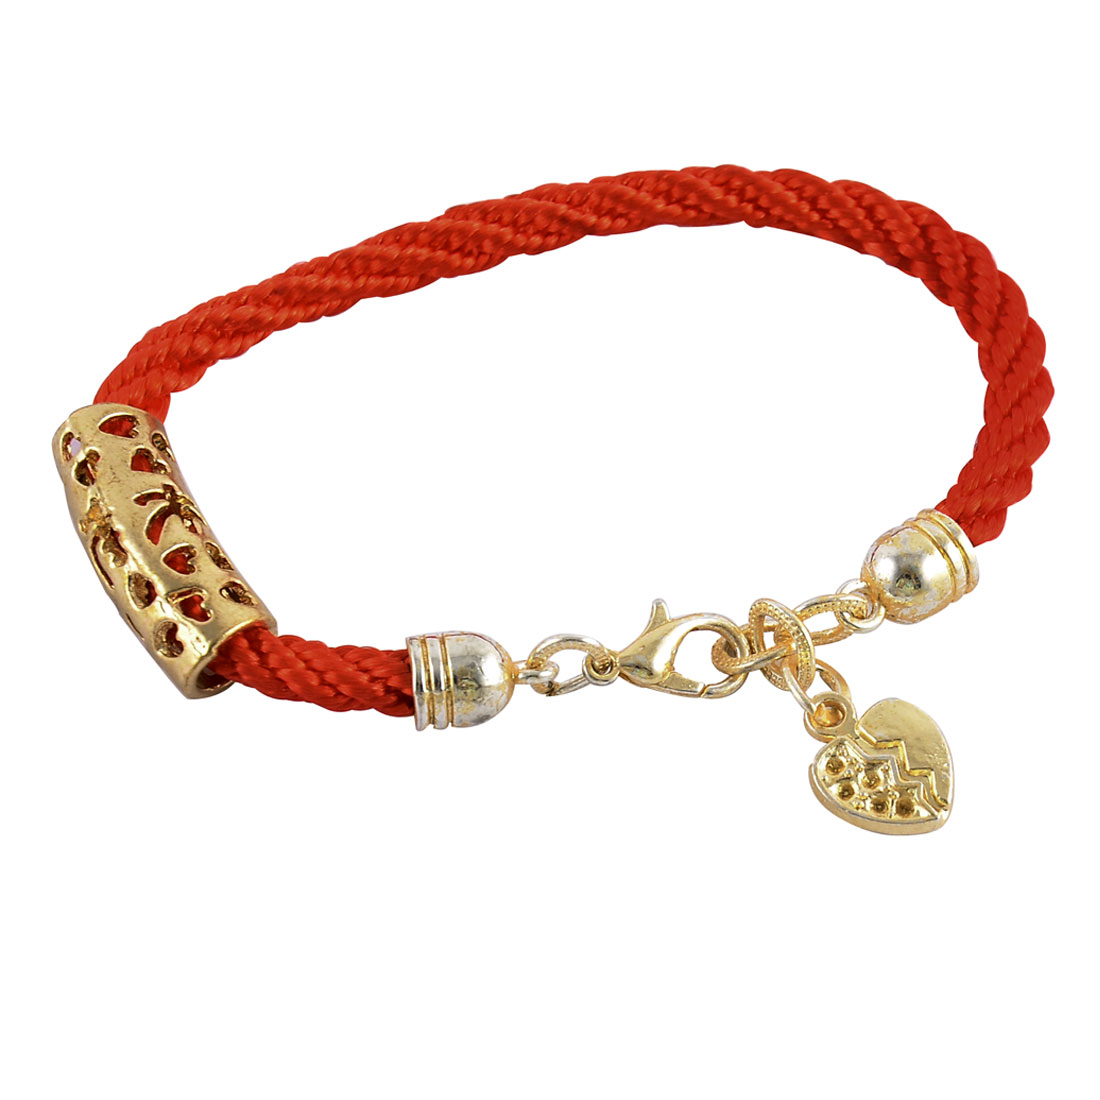 Nylon Adjustable Braid Rope Heart Decor Bracelet Bangle Red Gold Tone